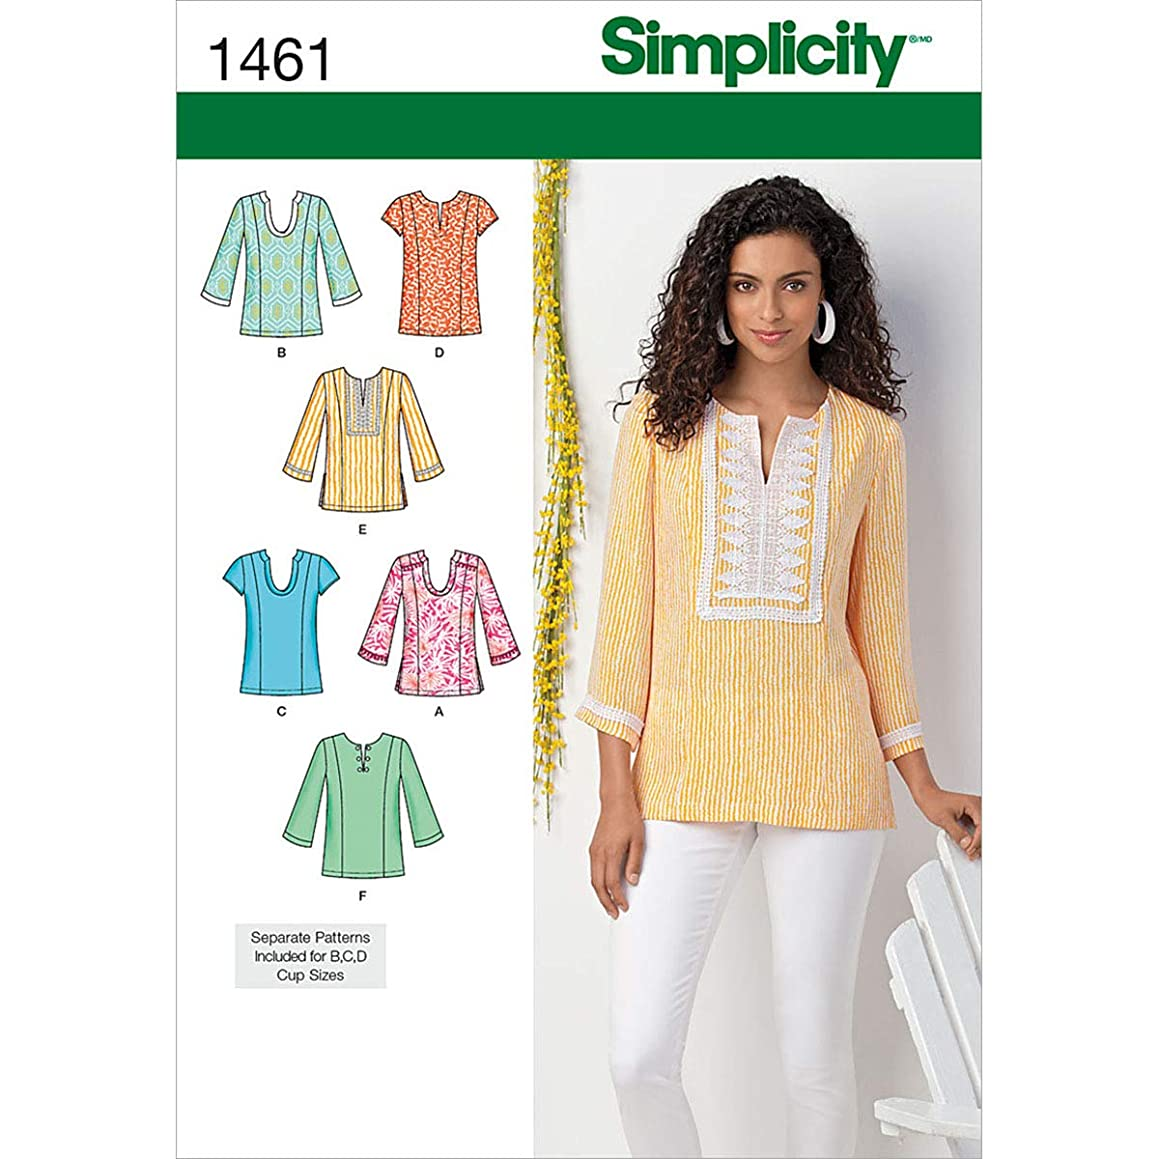 Simplicity 1461 Women's Top Collection Sewing Patterns, Sizes 10-18